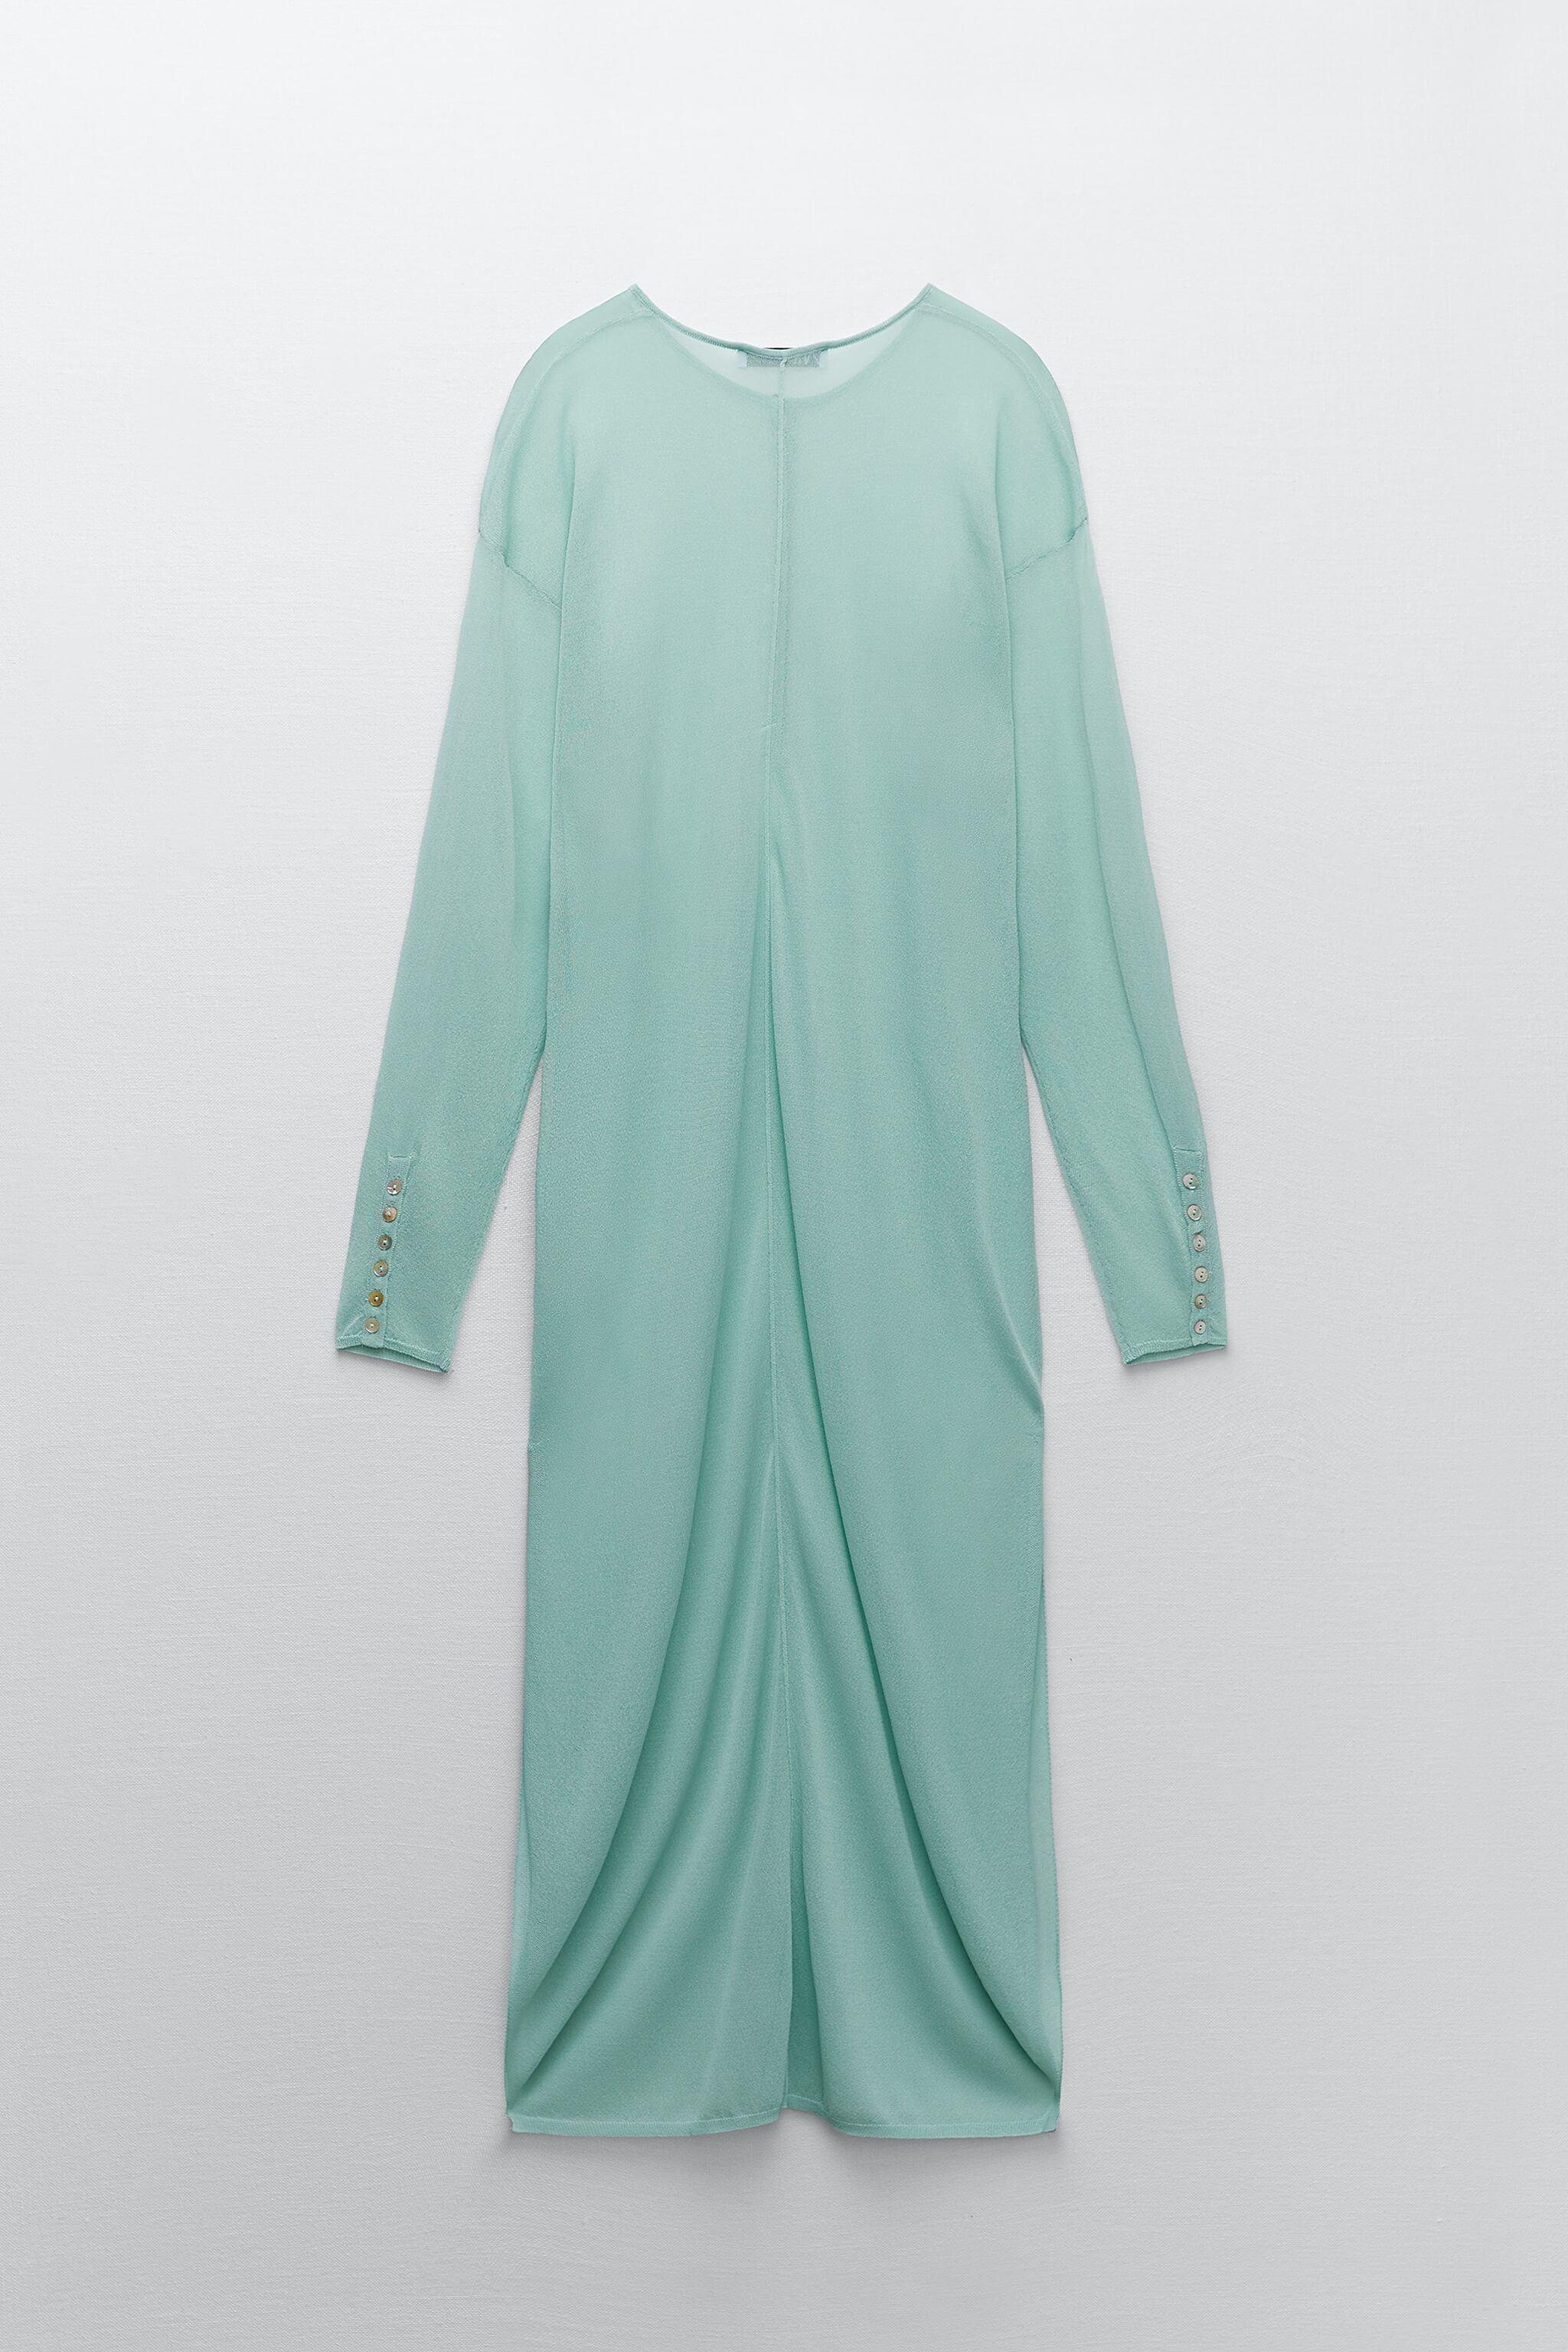 SEMI-SHEER KNIT TUNIC LIMITED EDITION 7